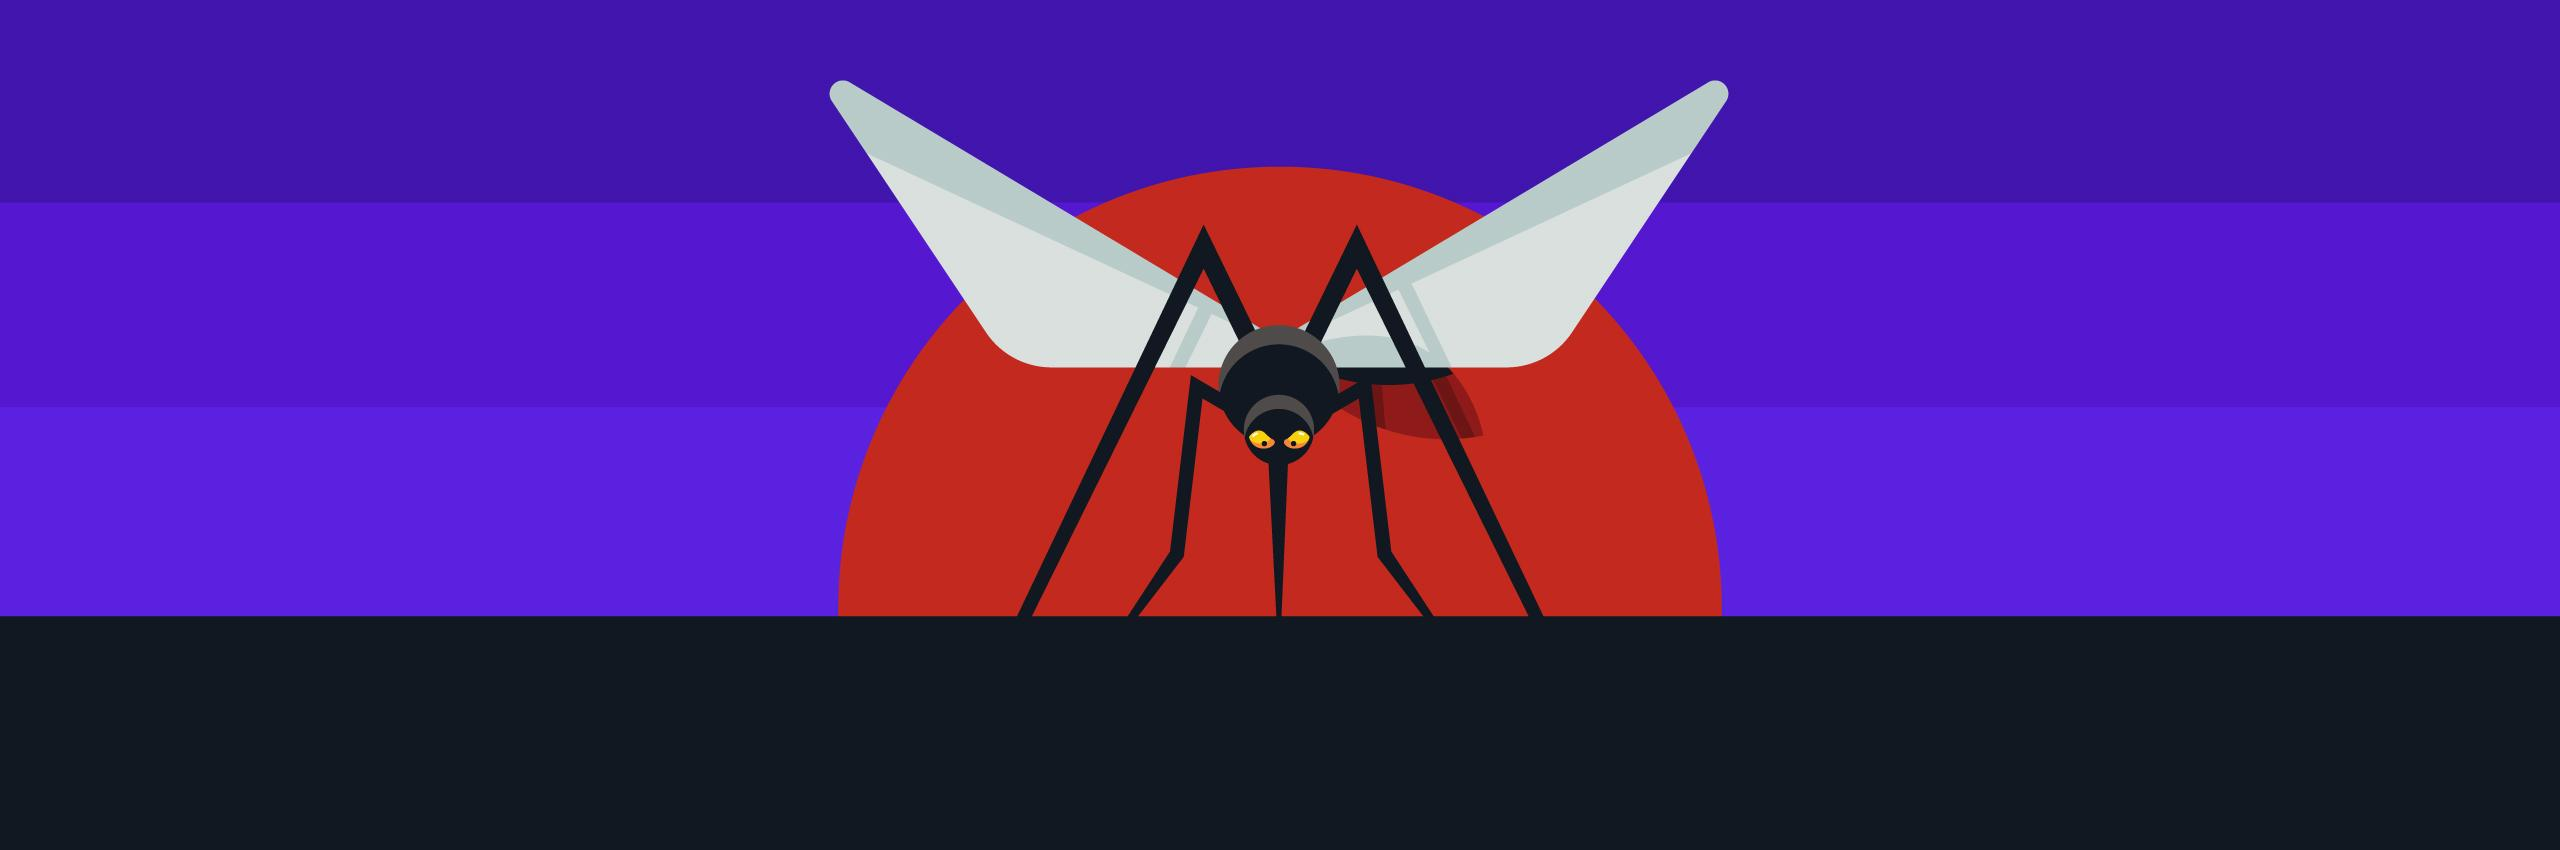 mosquito drawing